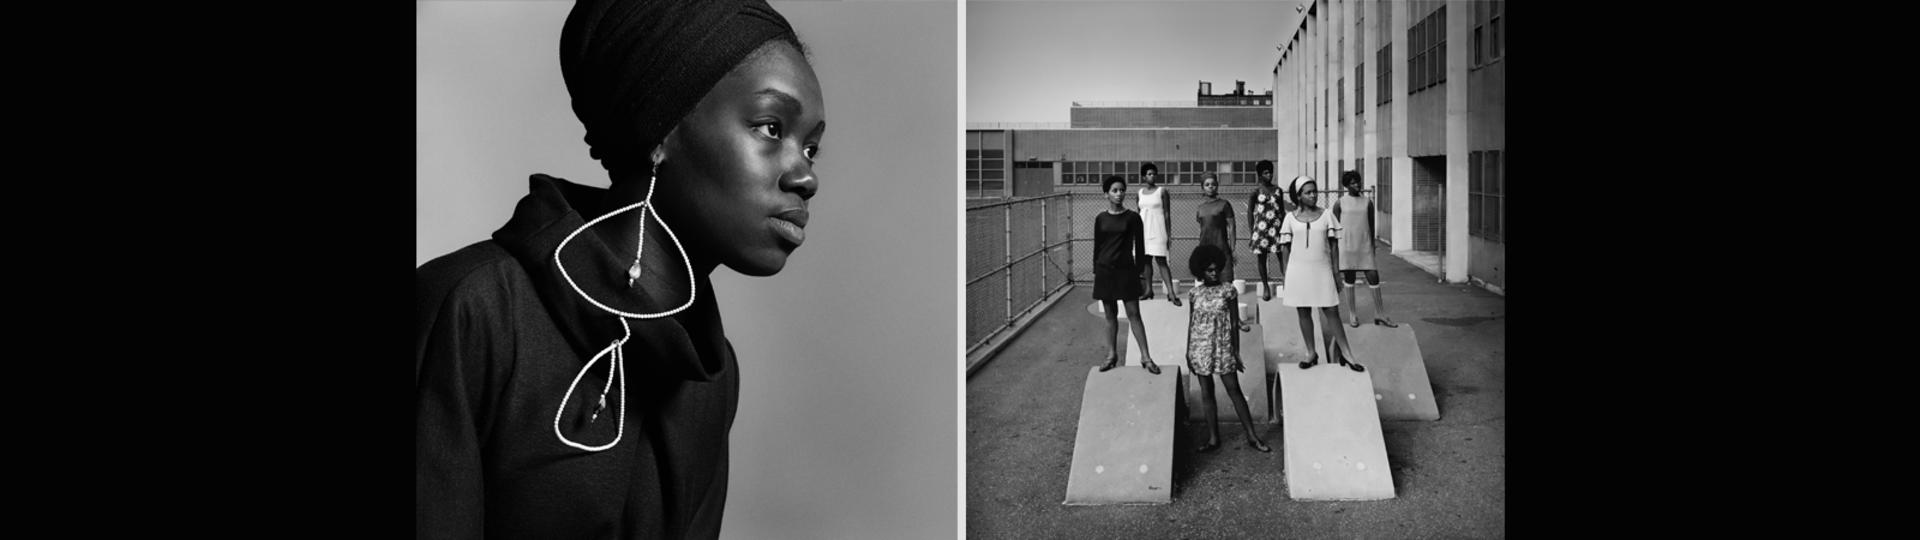 Black Is Beautiful: The Photography of Kwame Brathwaite